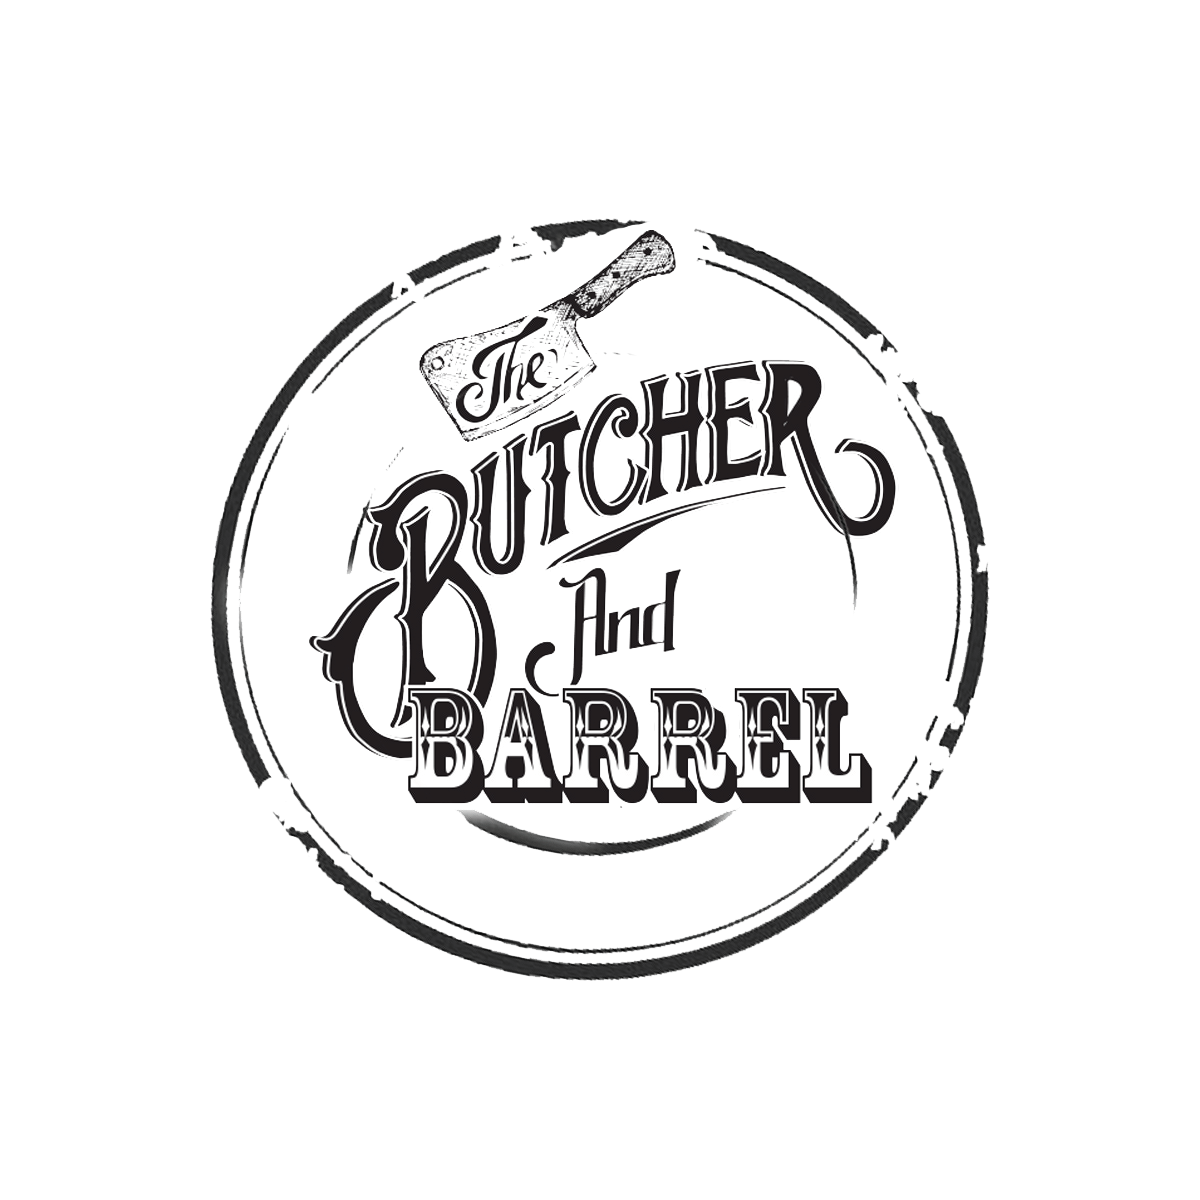 Butcher and Barrel